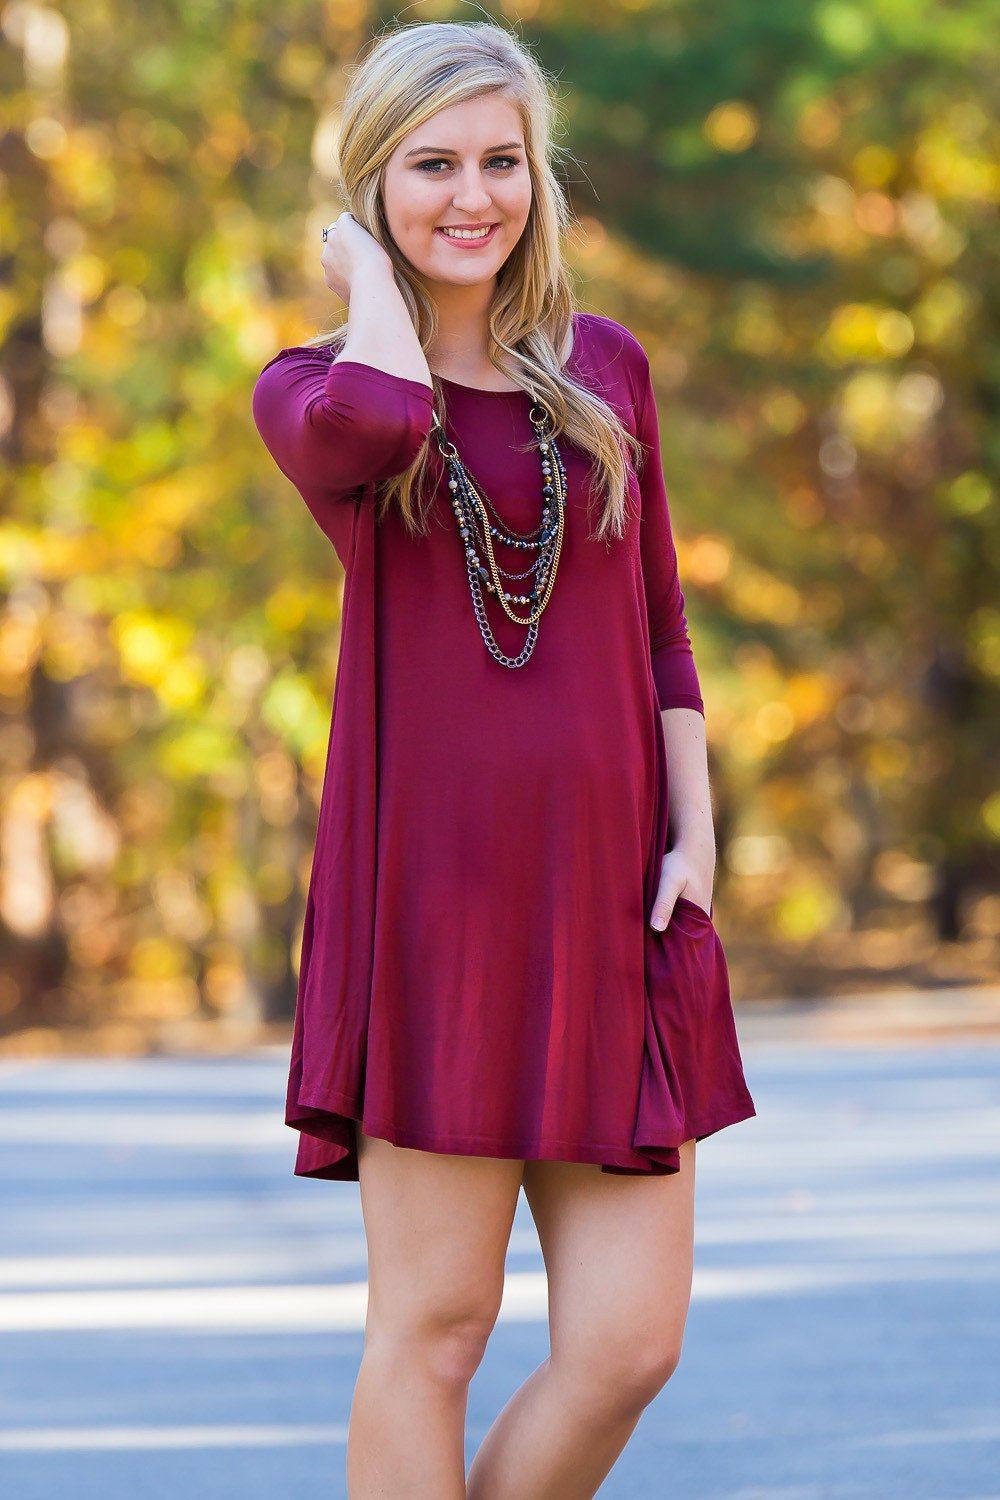 Piko 3/4 Sleeve Swing Dress - Wine - Piko Clothing